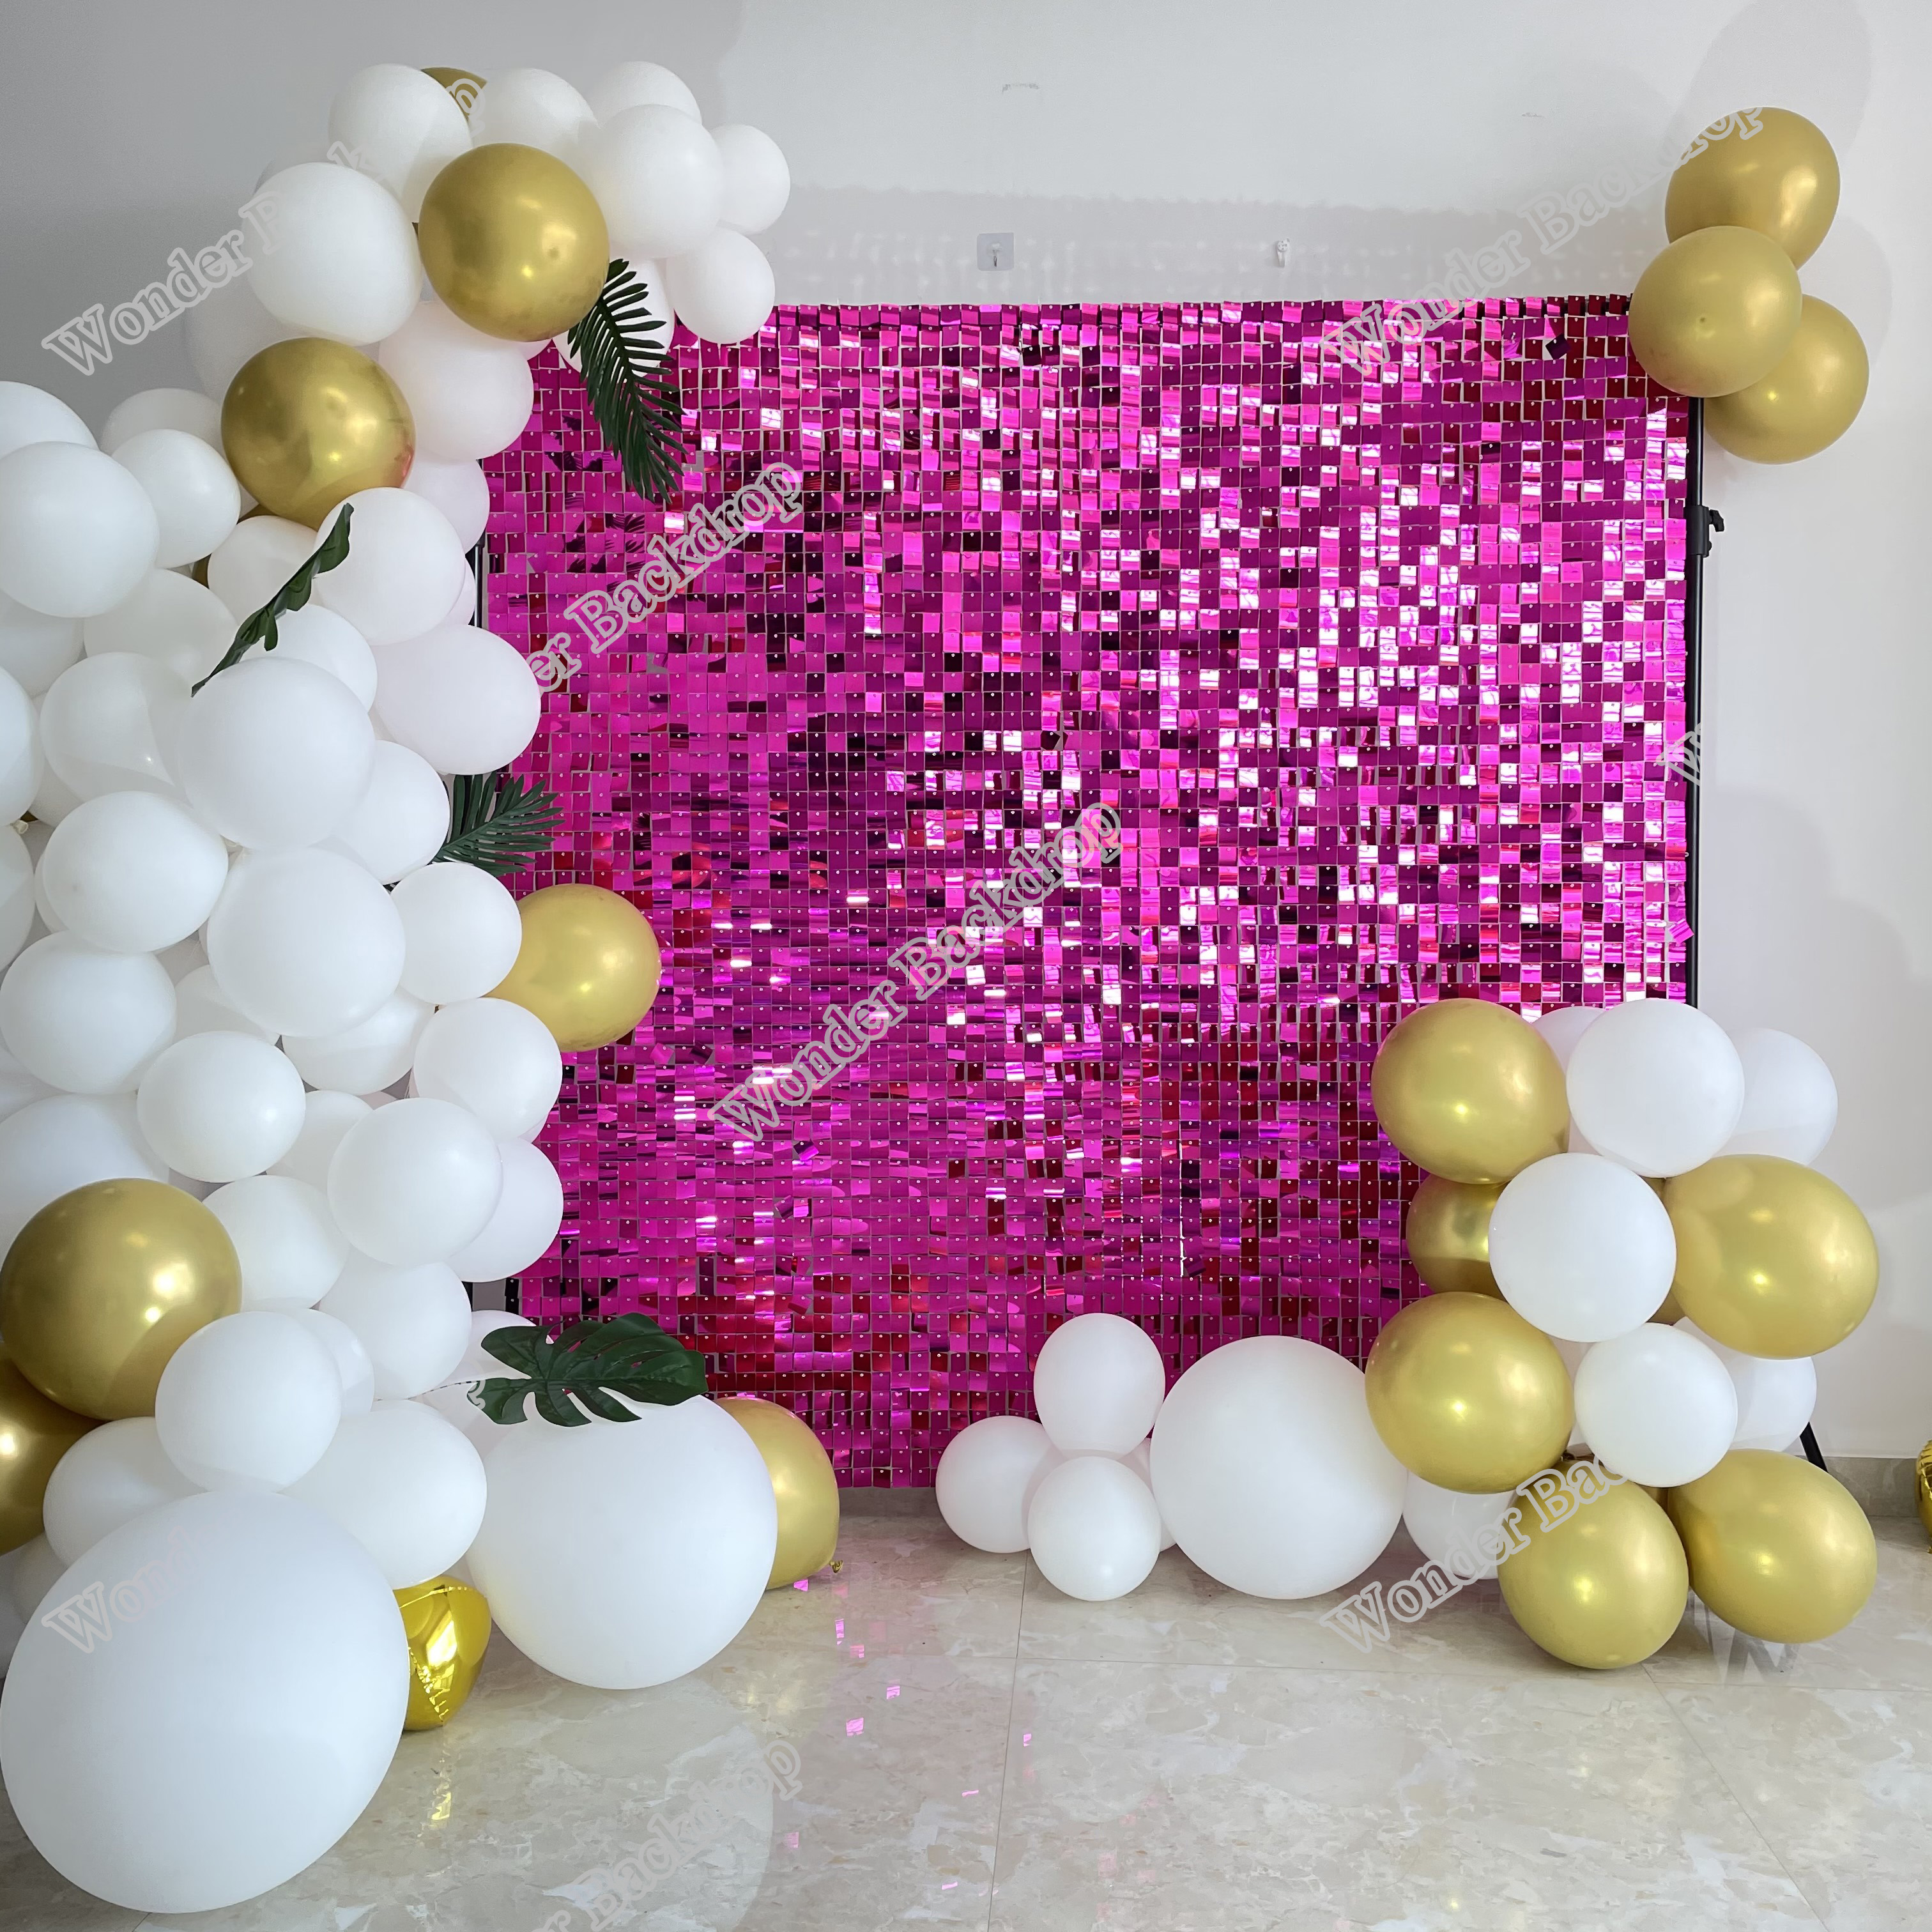 Hot Pink 30cmx30cm Shimmer Sequin Wall For Advertsing Home Decoration Party Event Backdrop Party Backdrops Aliexpress